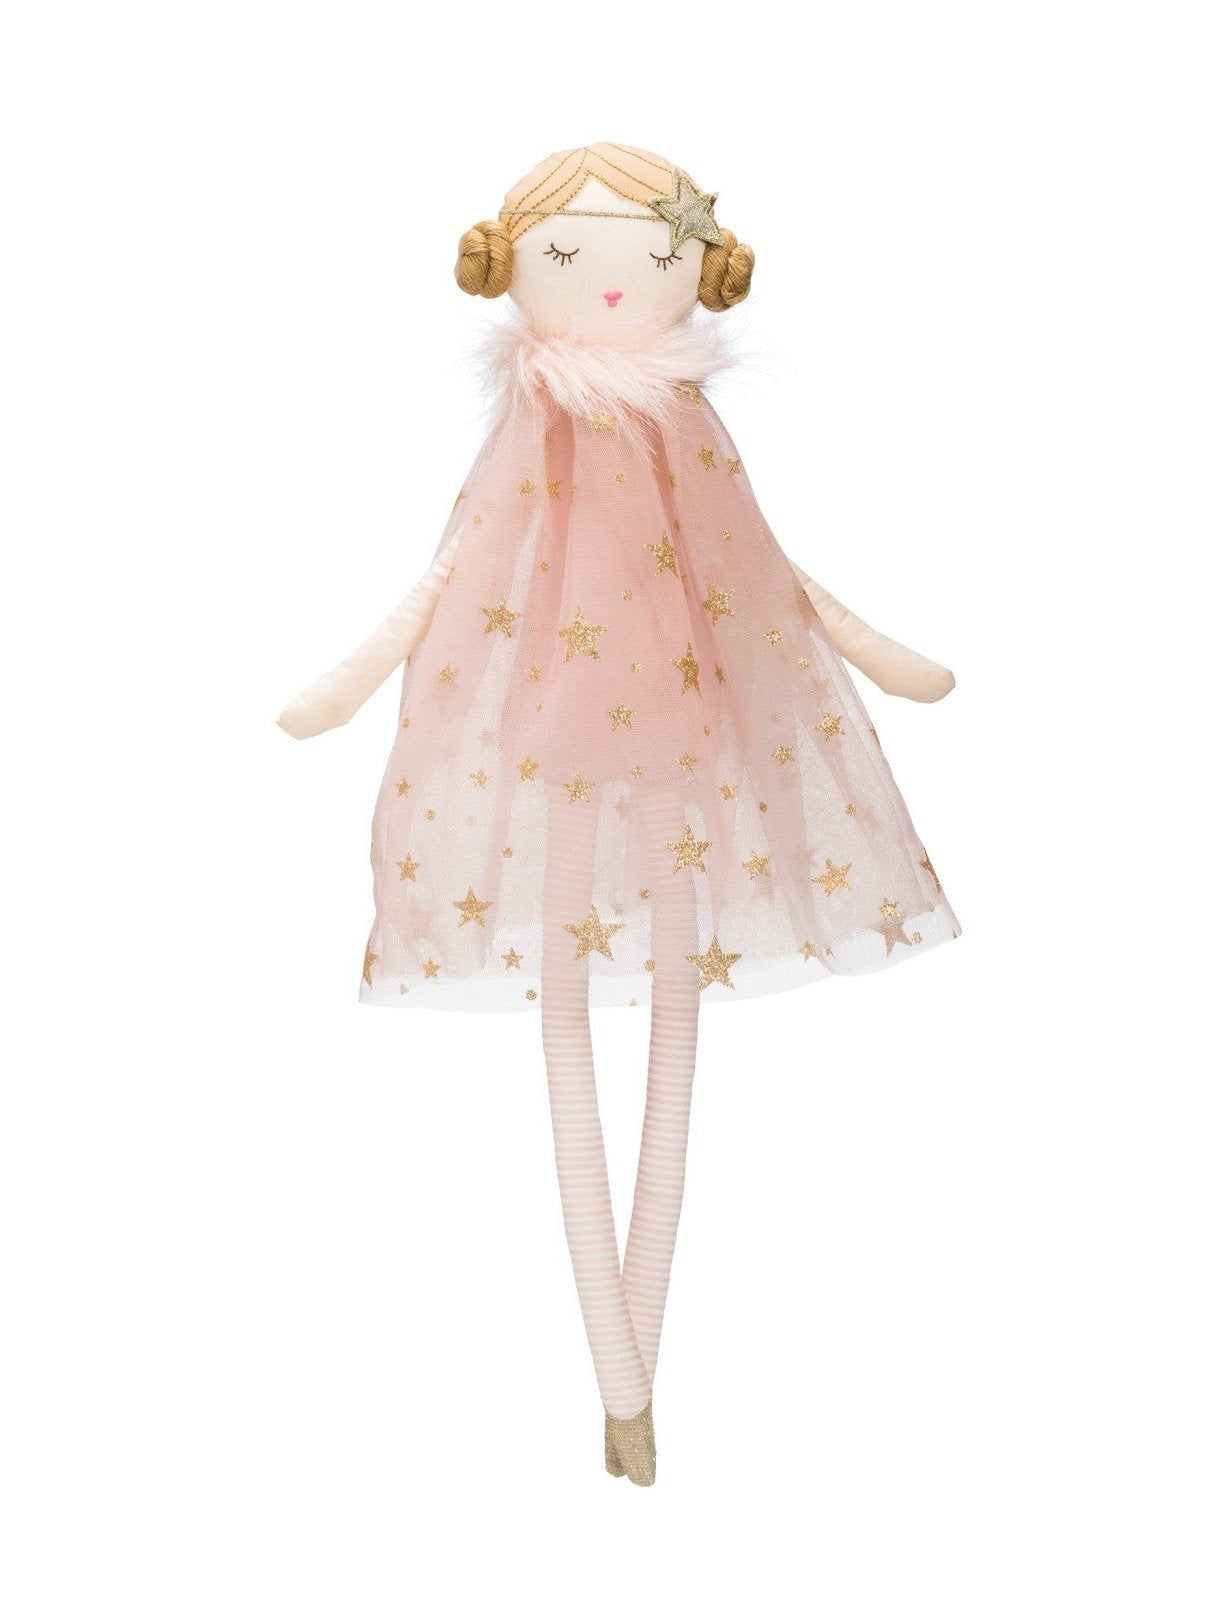 Cotton Doll - Sparkle Star Tulle Dress